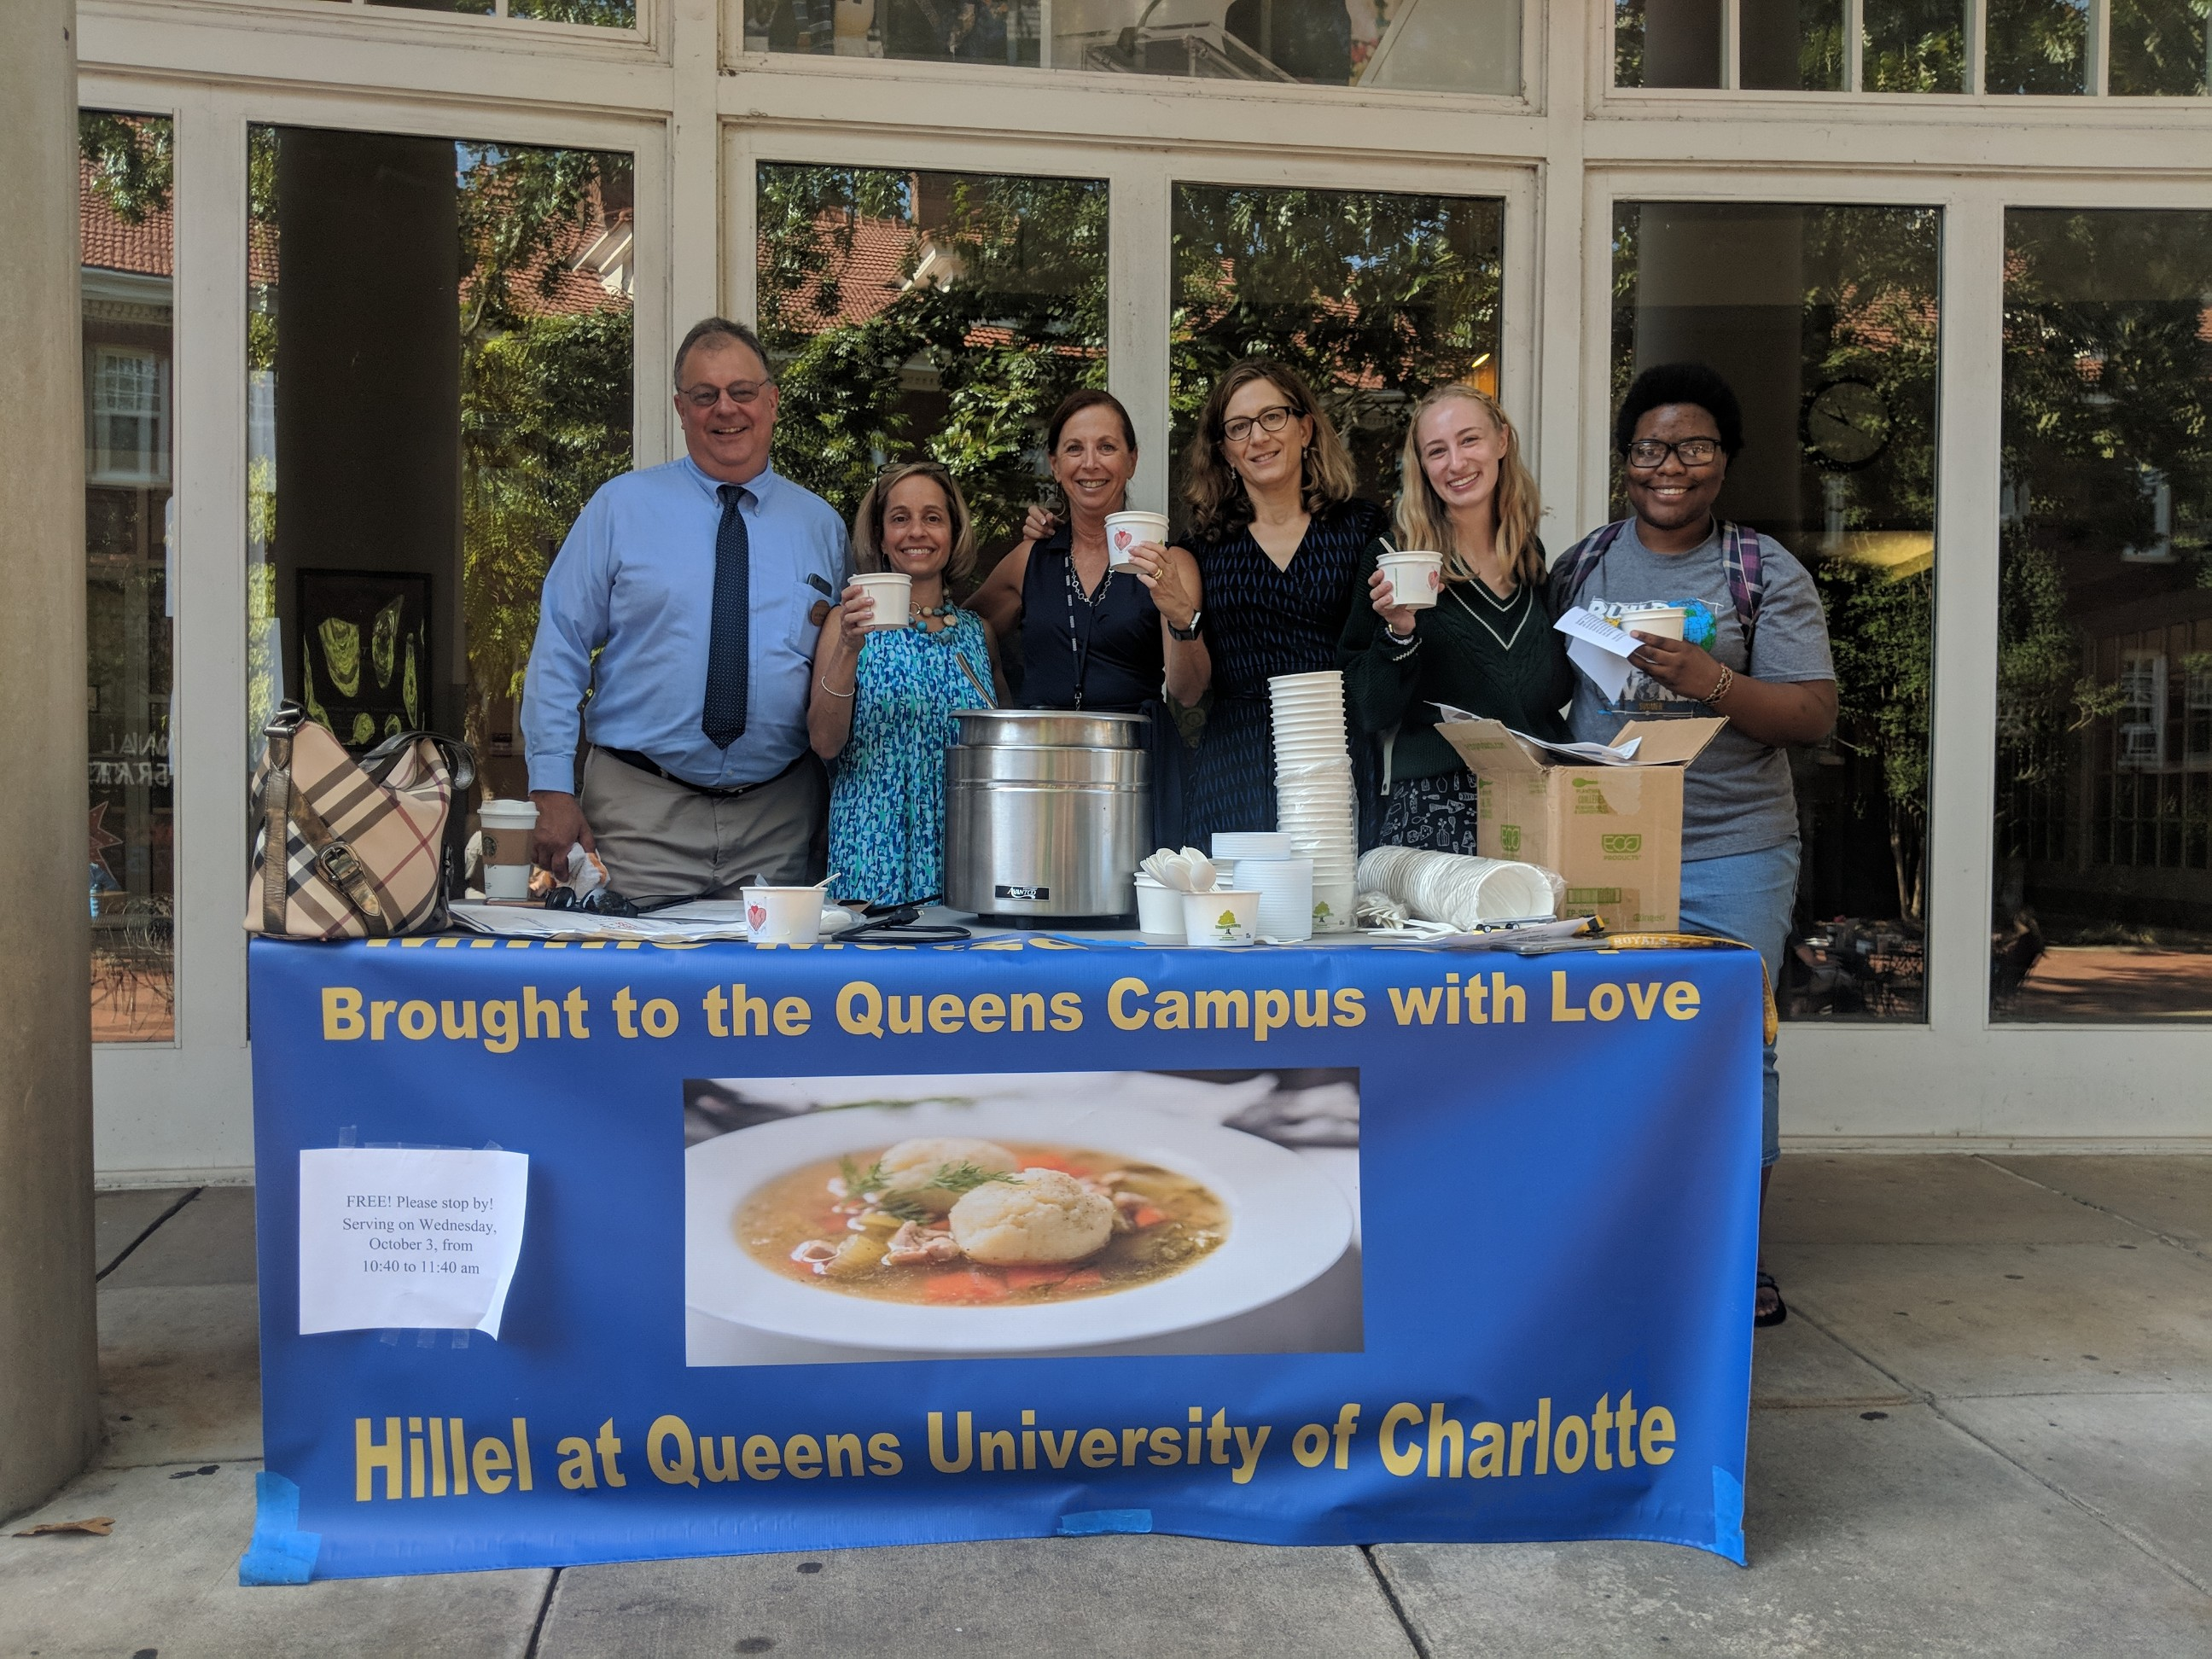 Giving free soup to students.